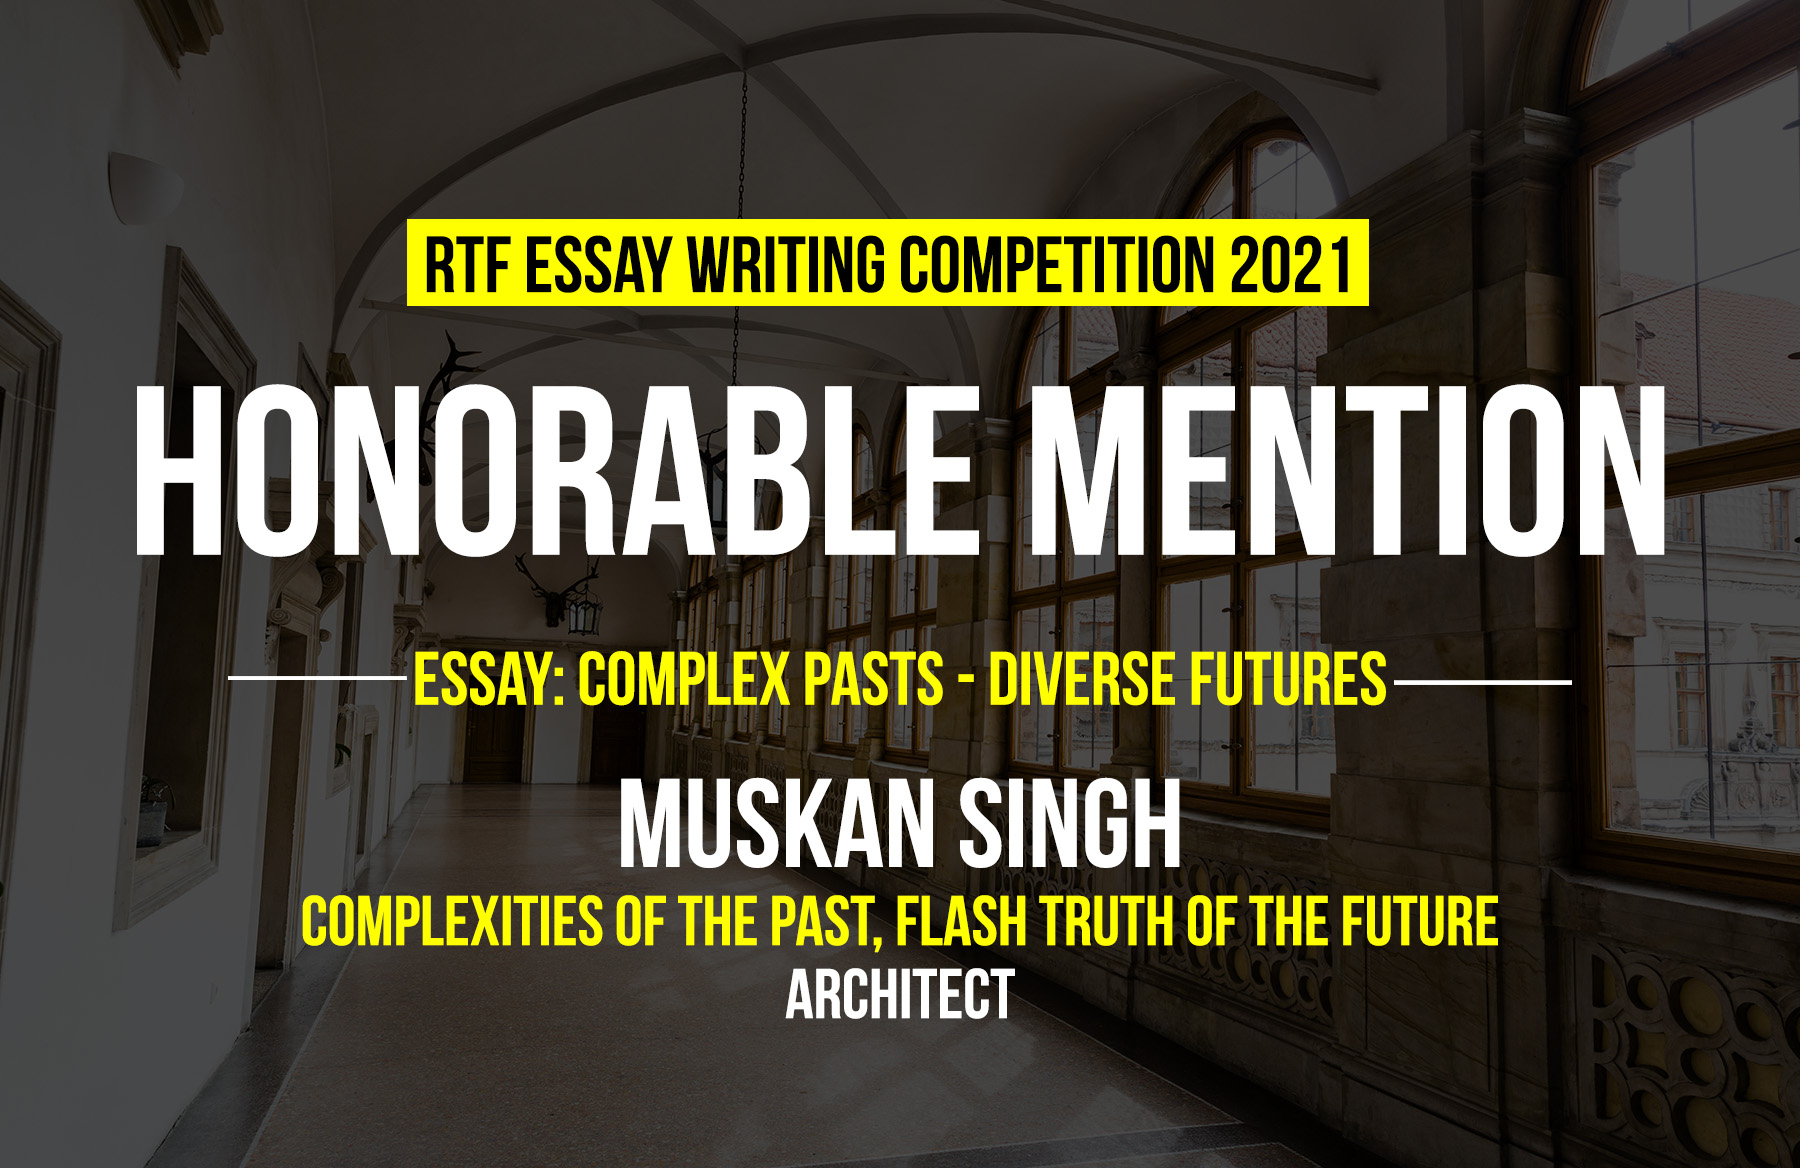 Complexities of the Past, Flash Truth of the Future By Muskan Singh